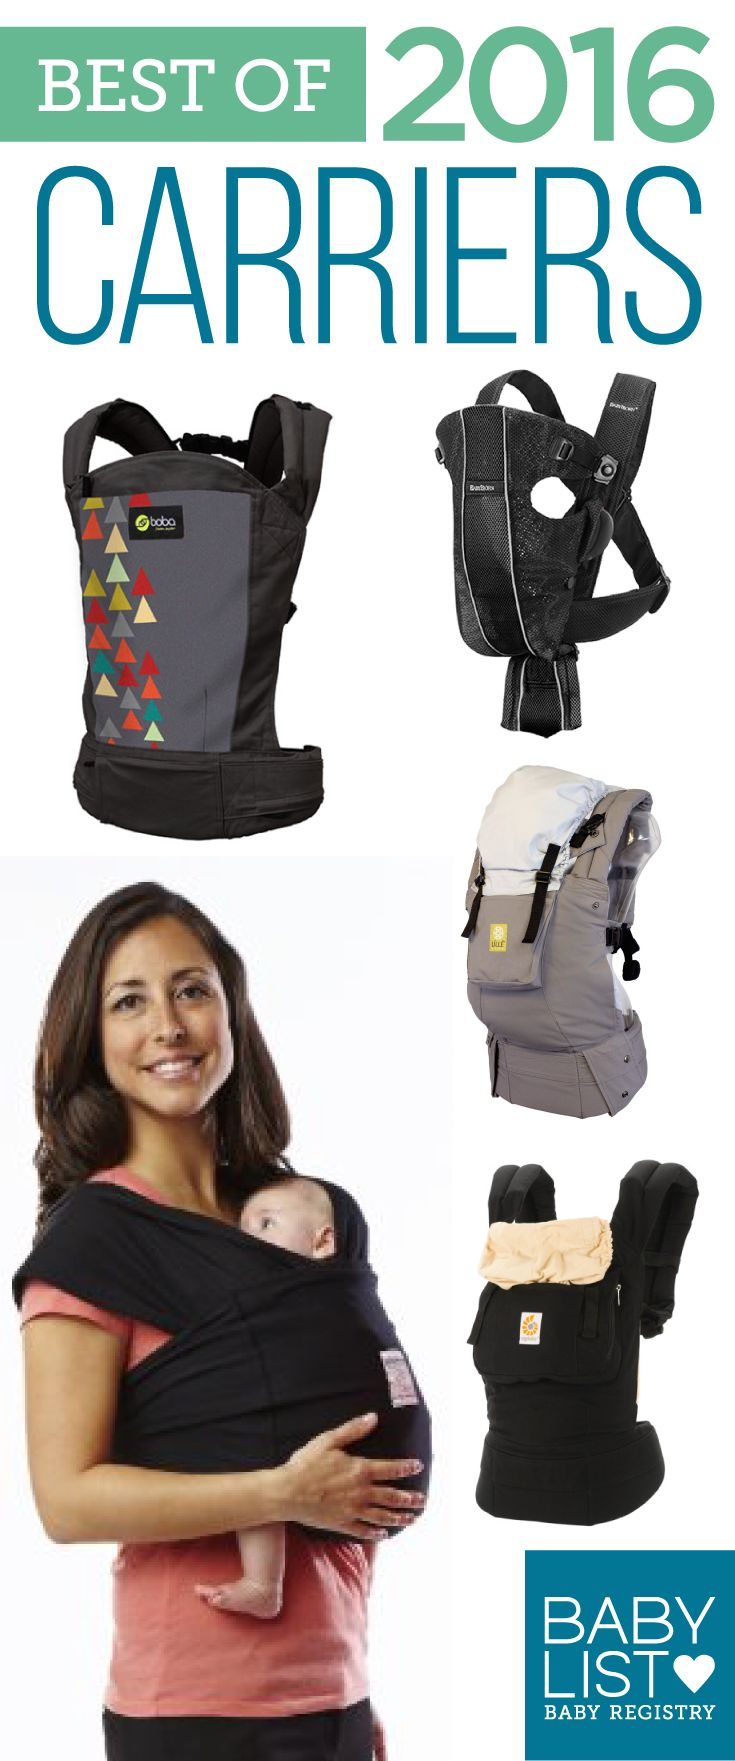 Need some advice to help you pick the best baby carrier? Here are the 5 best carriers of 2016 - based on our own research + input from thousands of parents. There is no one must-have baby carrier. Every family is different. Use this guide to help you figure out the best carrier for your needs and priorities.